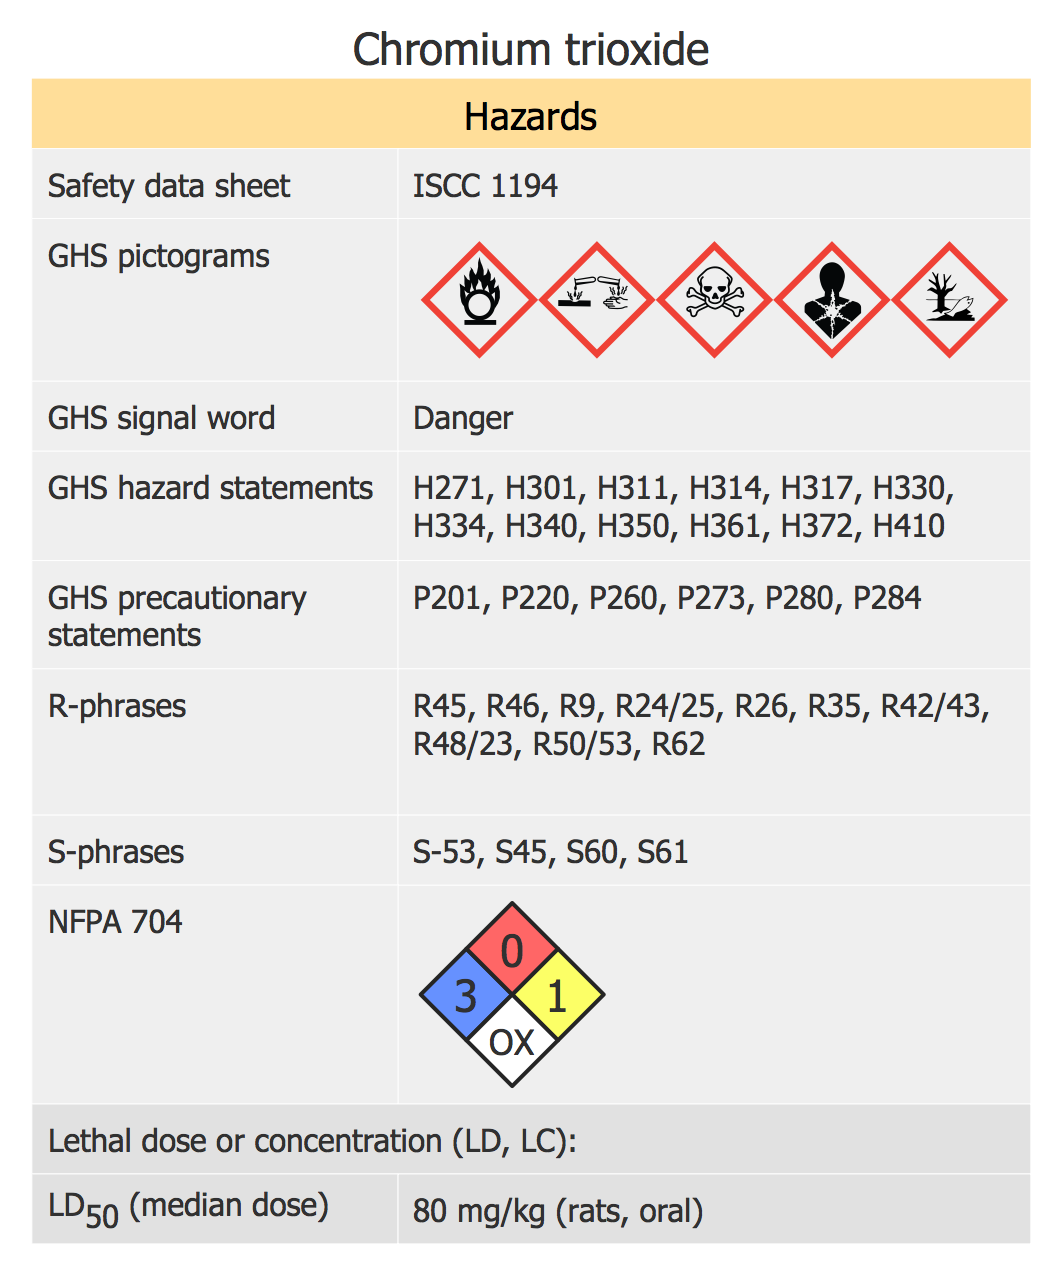 Chromium Trioxide Hazards